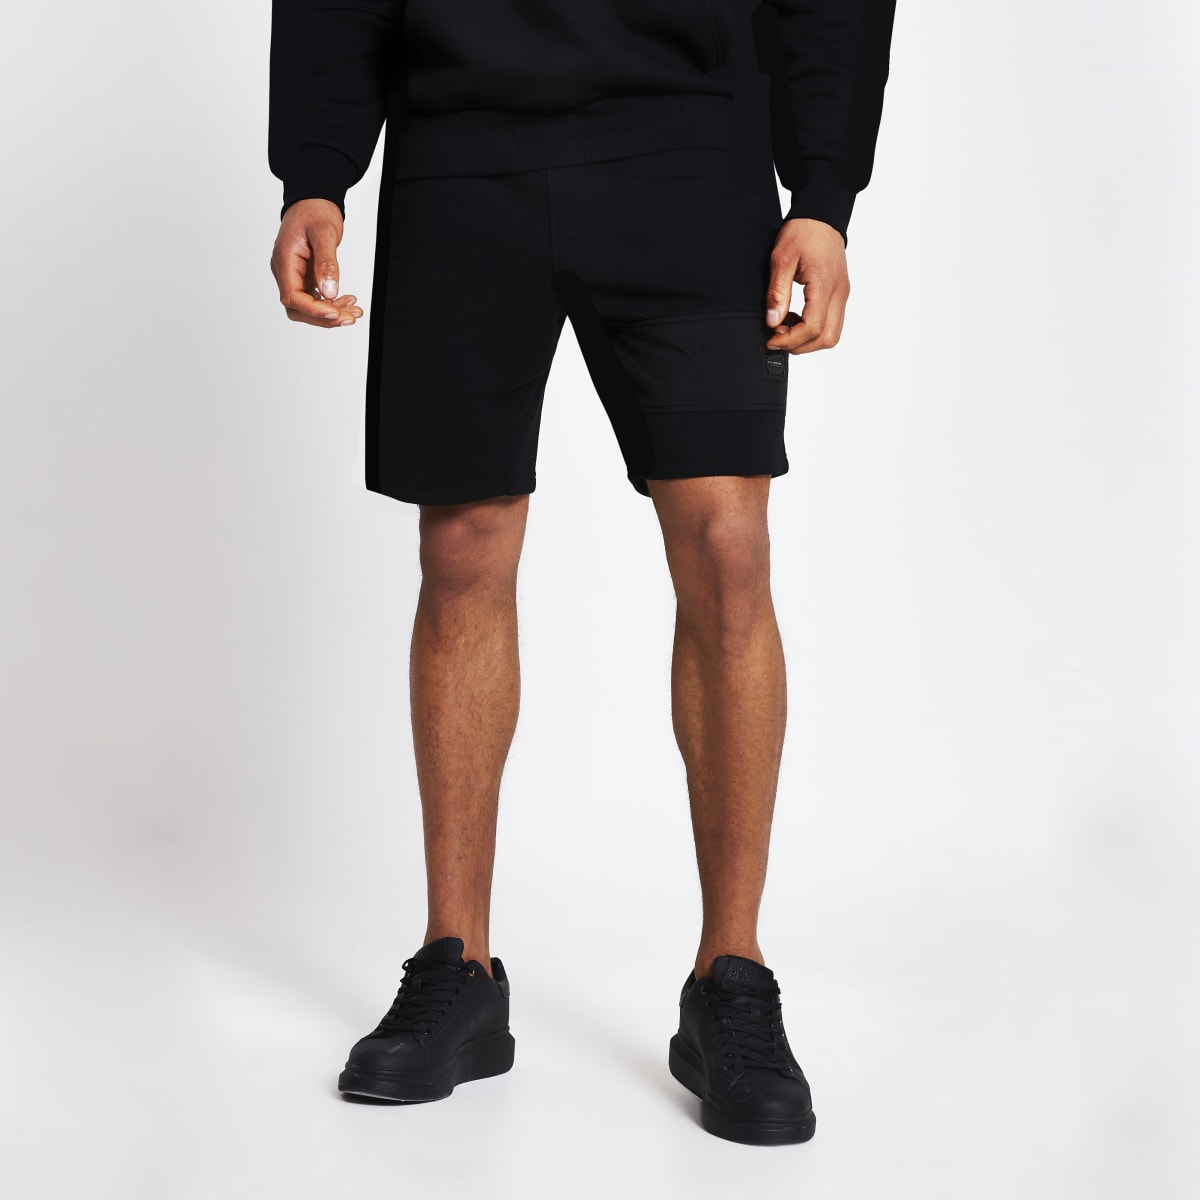 Maison Riviera black slim fit shorts